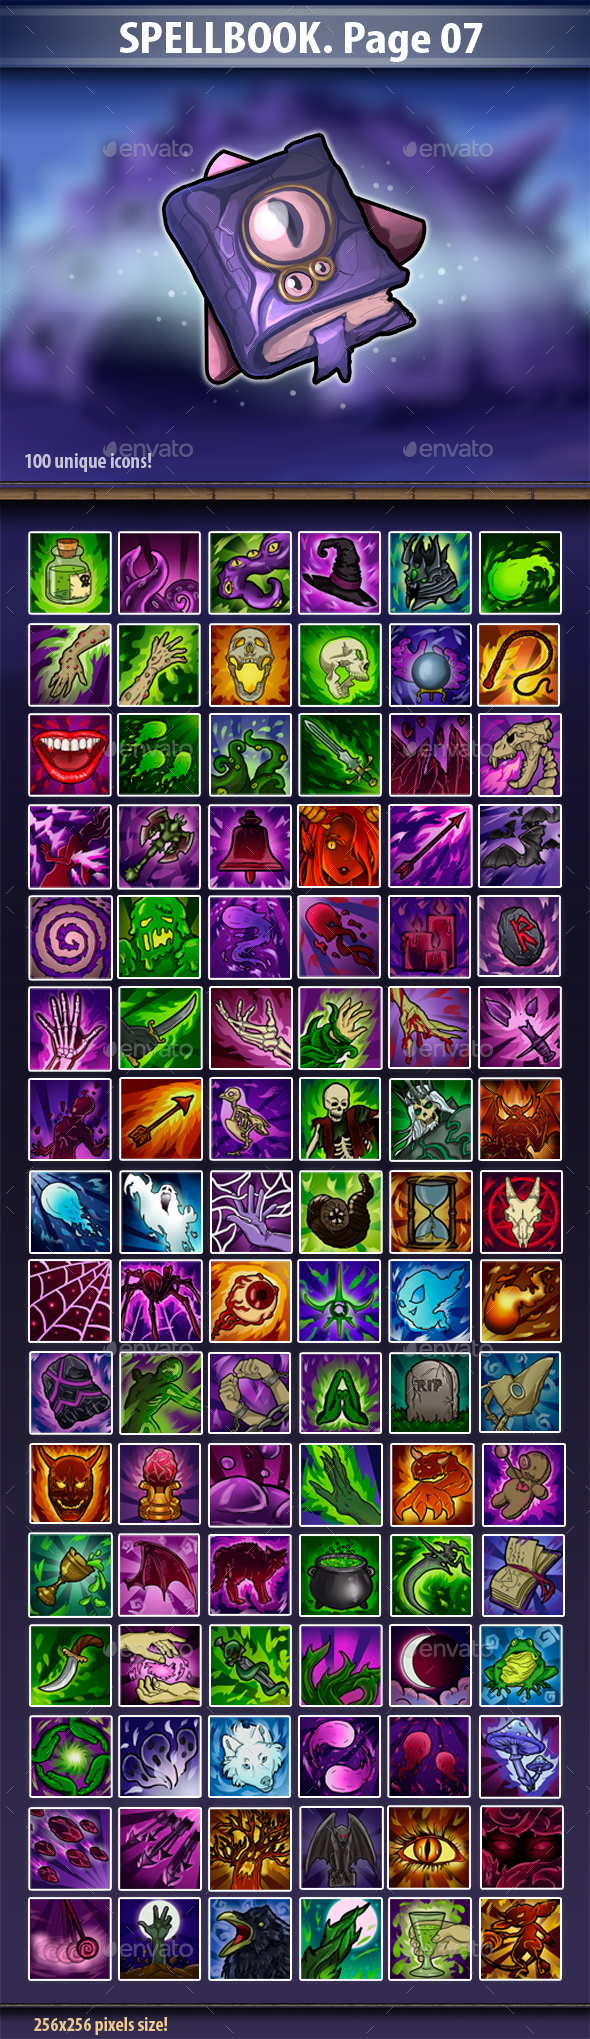 SpellBook Page 07 - Miscellaneous Game Assets